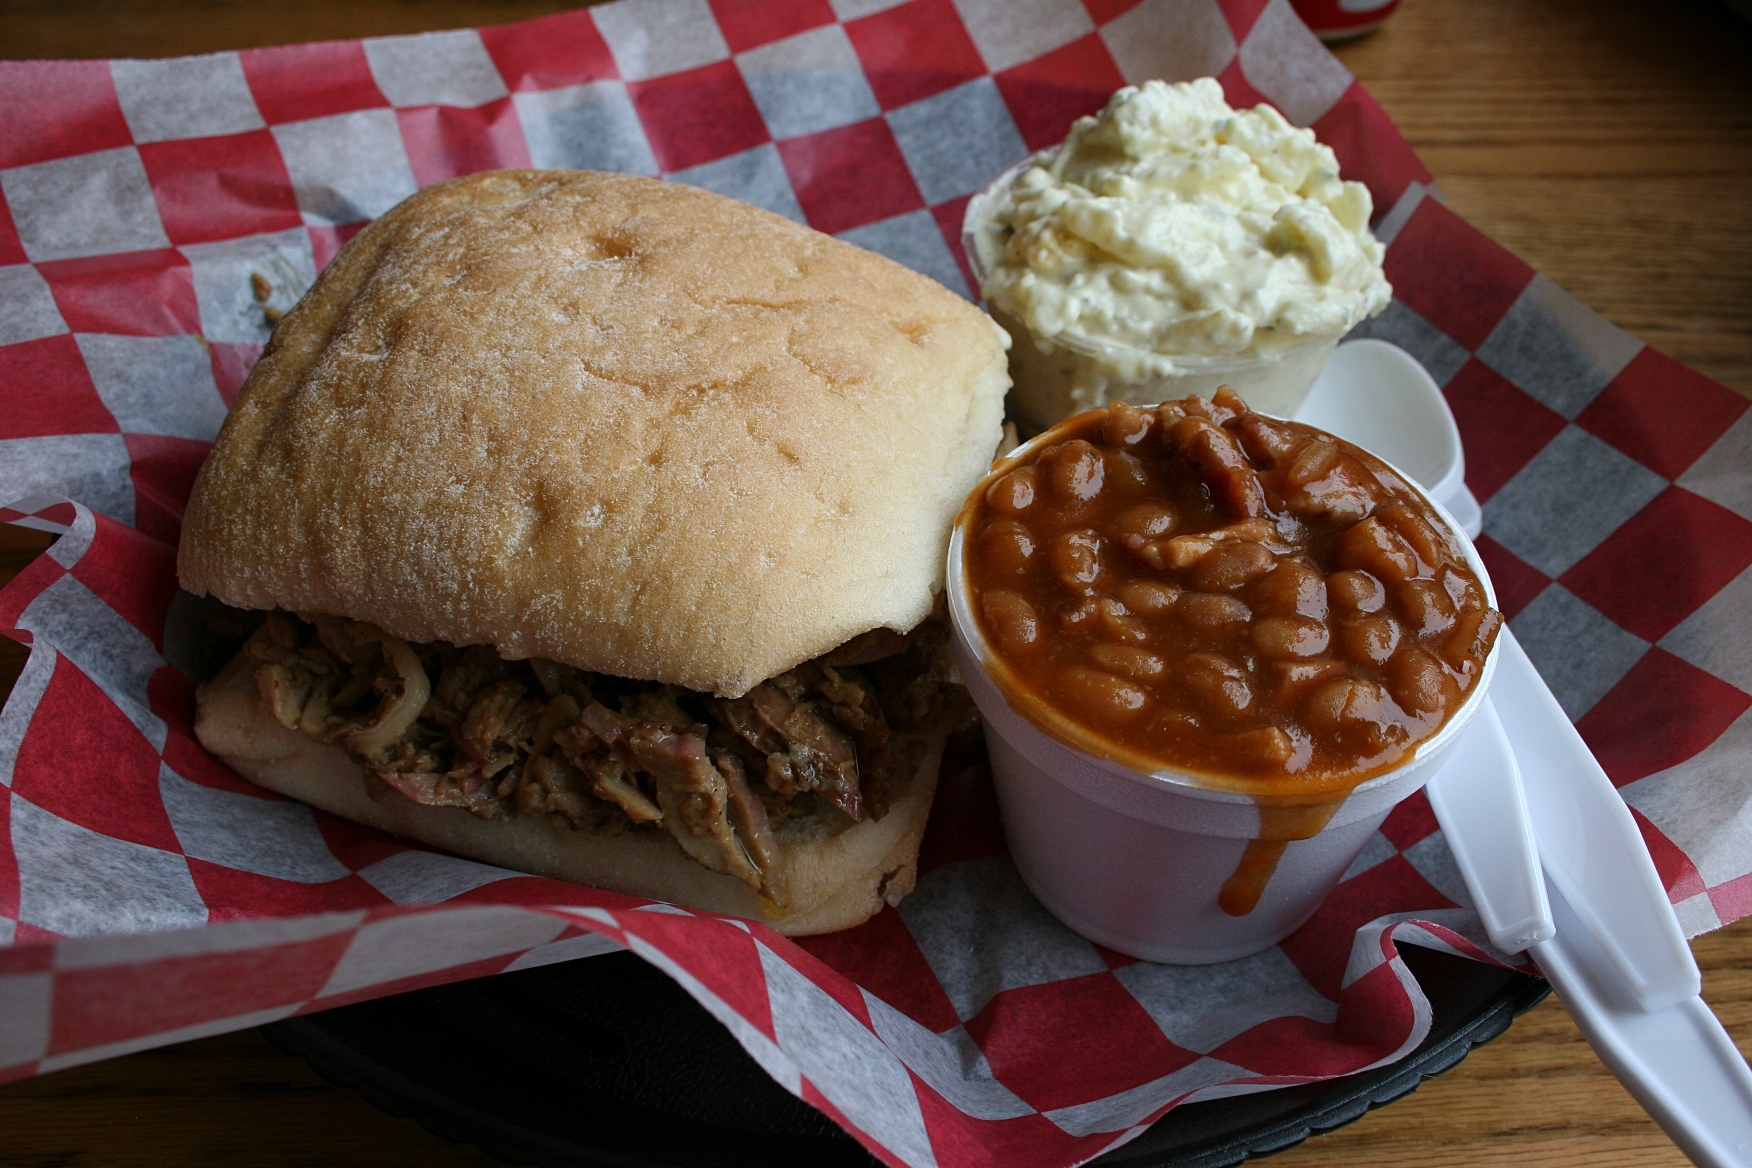 My Southern Bbq Pork Sandwich Served With Savory Baked Beans And Potato Salad